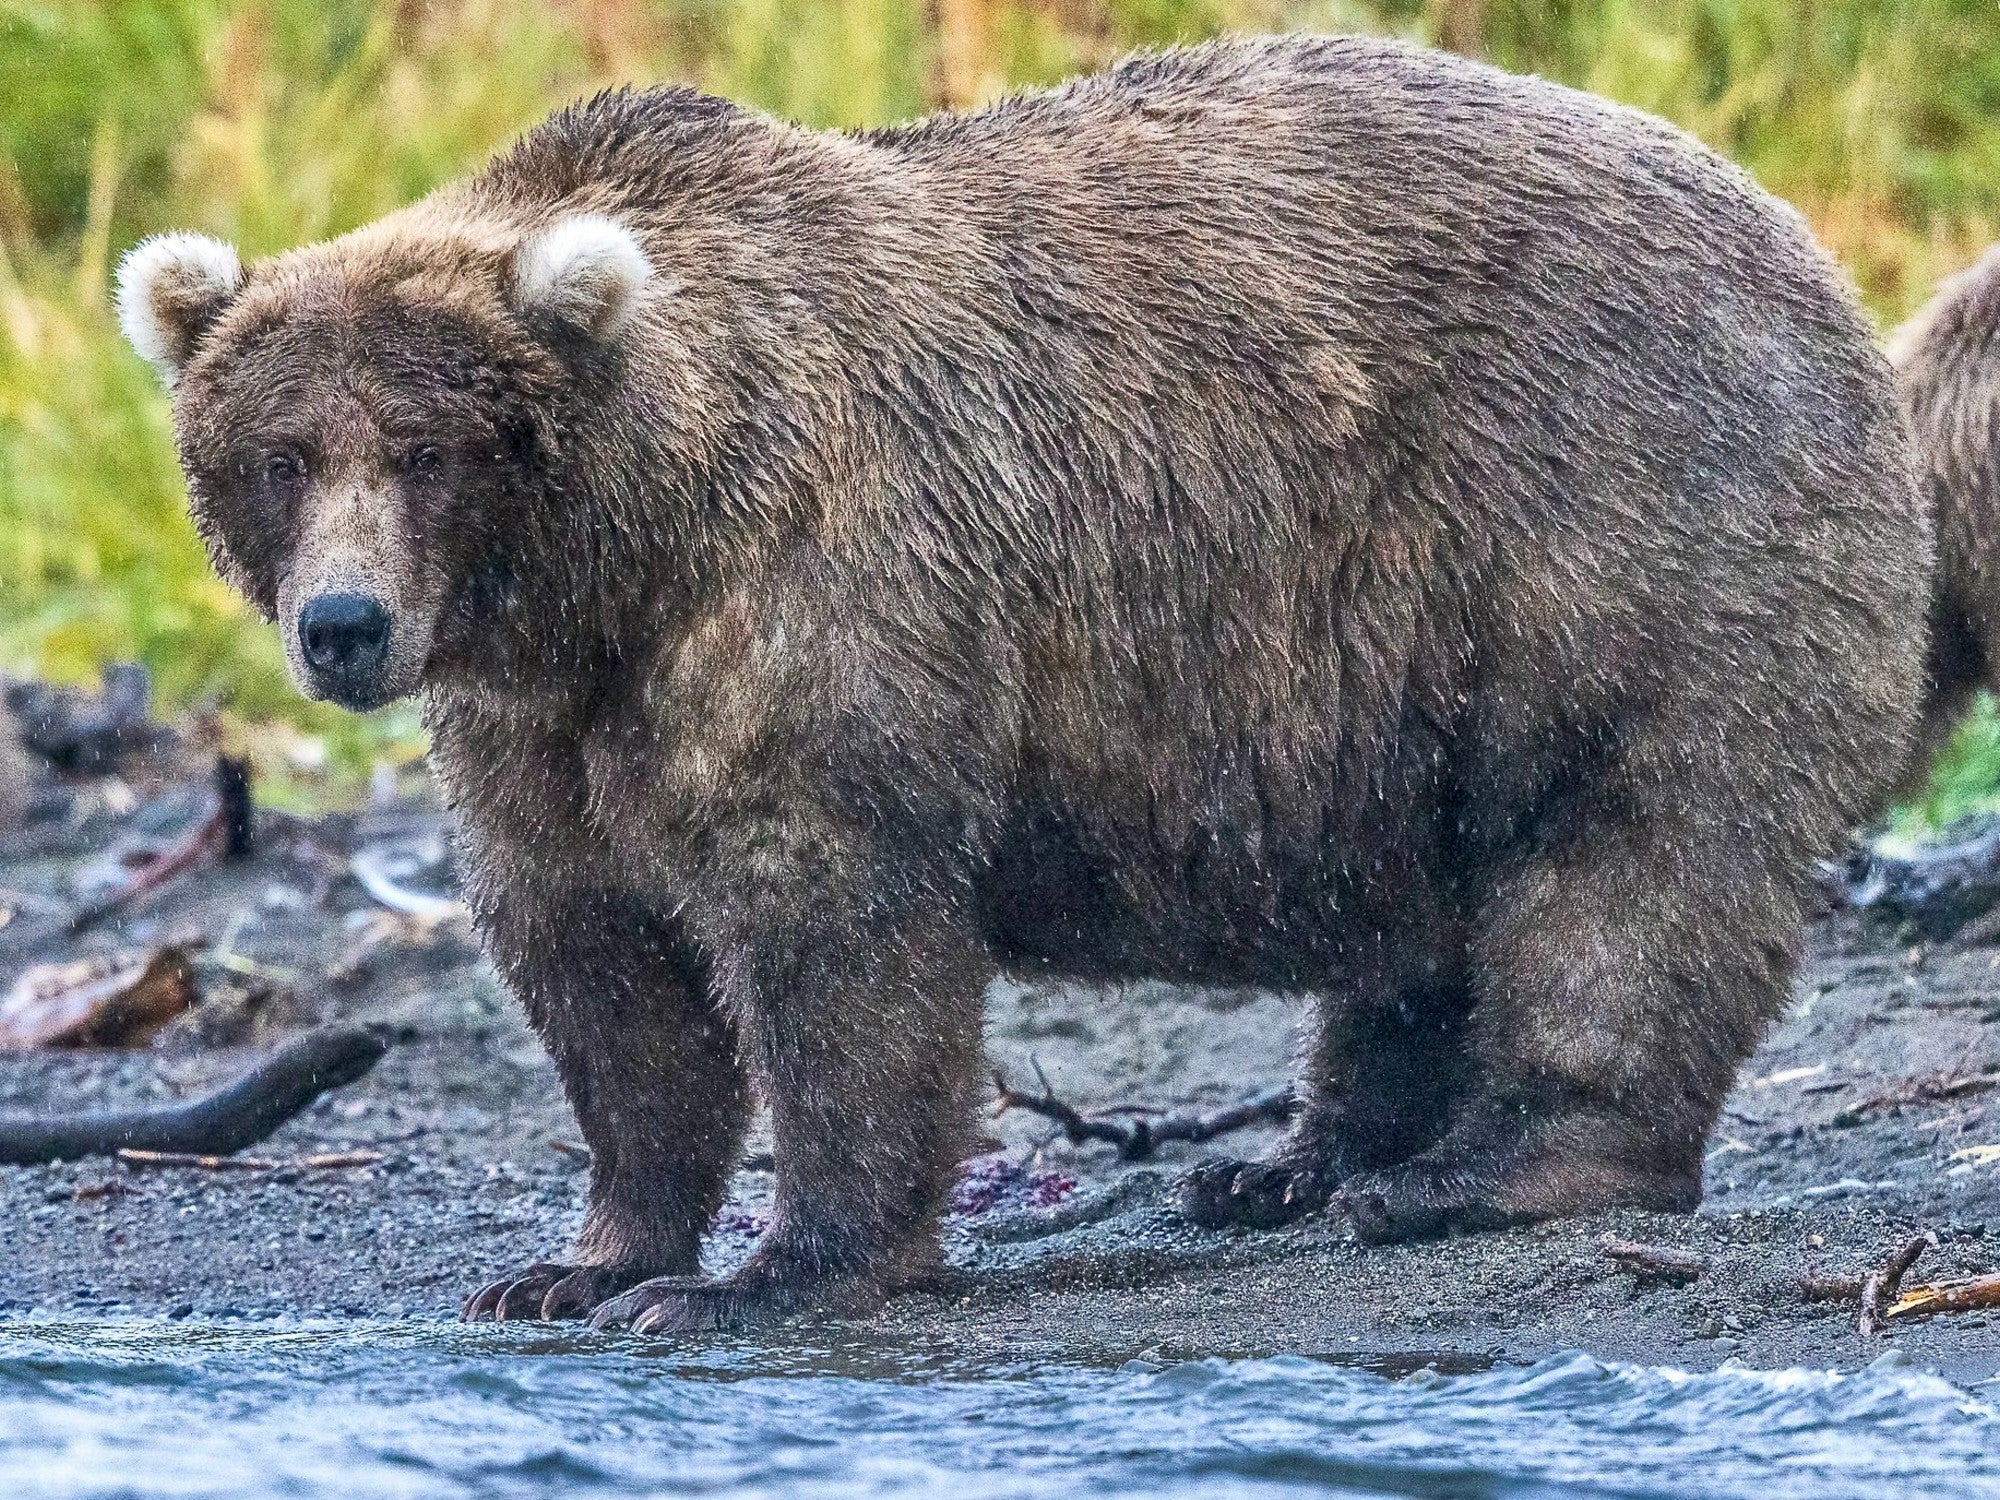 Bear 128 'Grazer', with medium blonde coat and light fluffy ears standing at the edge of the water with tall grass behind her.